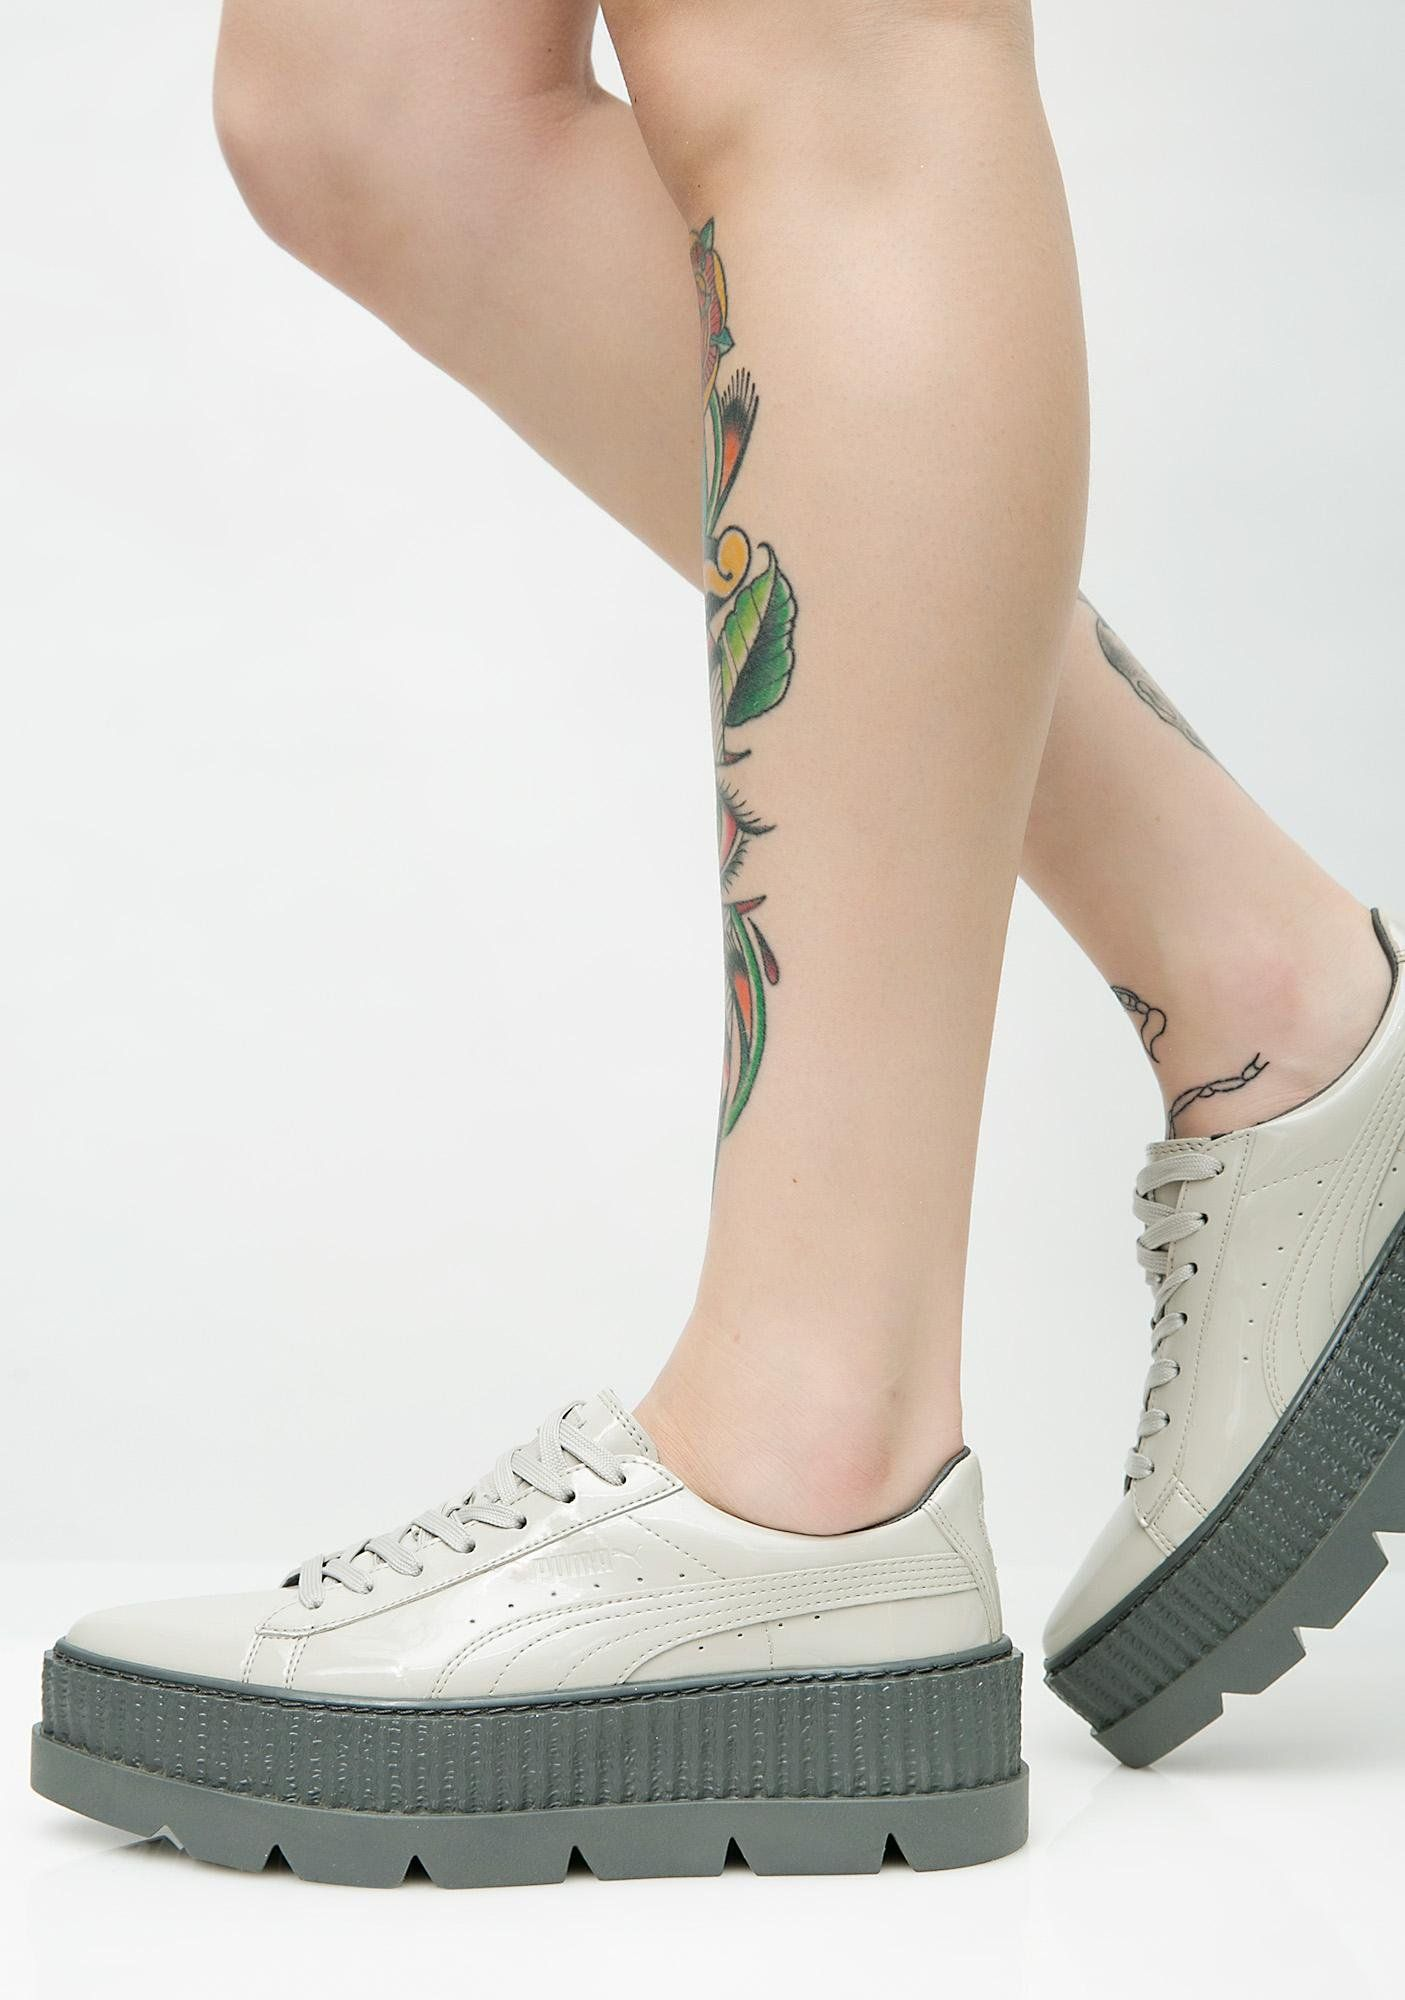 f3c1994b0094 PUMA Dove FENTY PUMA By Rihanna Pointy Patent Creepers will elevate your  shoe game. These gray platform creepers have pointed toes and lace-up front  ...